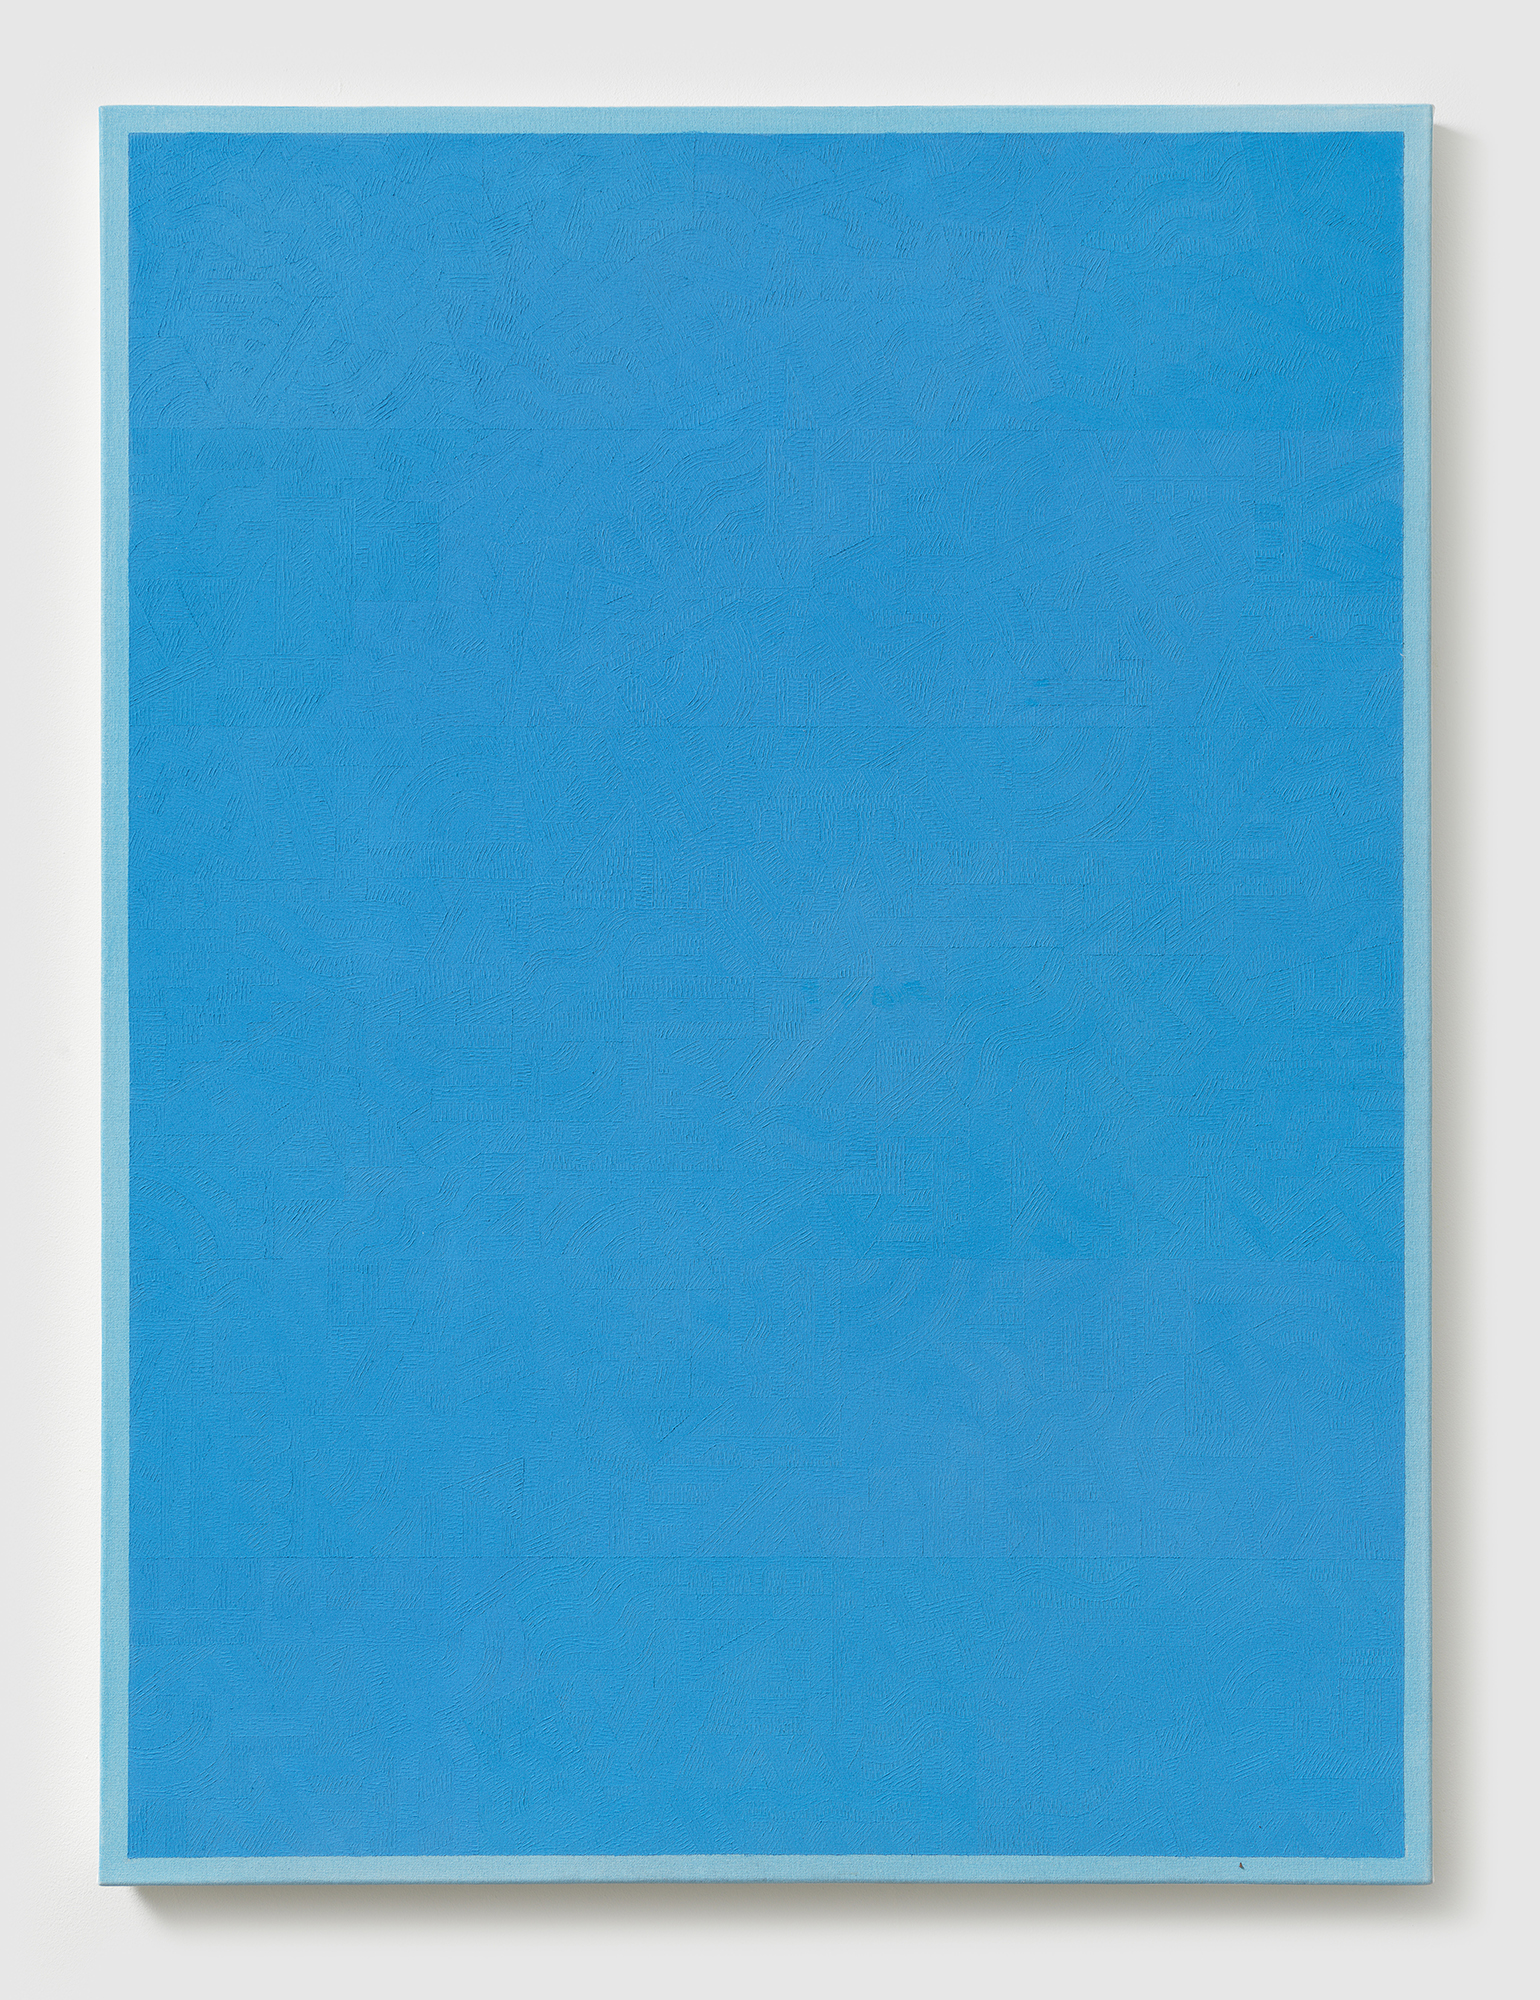 Timothy Hull, Untitled Hellenism Blue, 2017